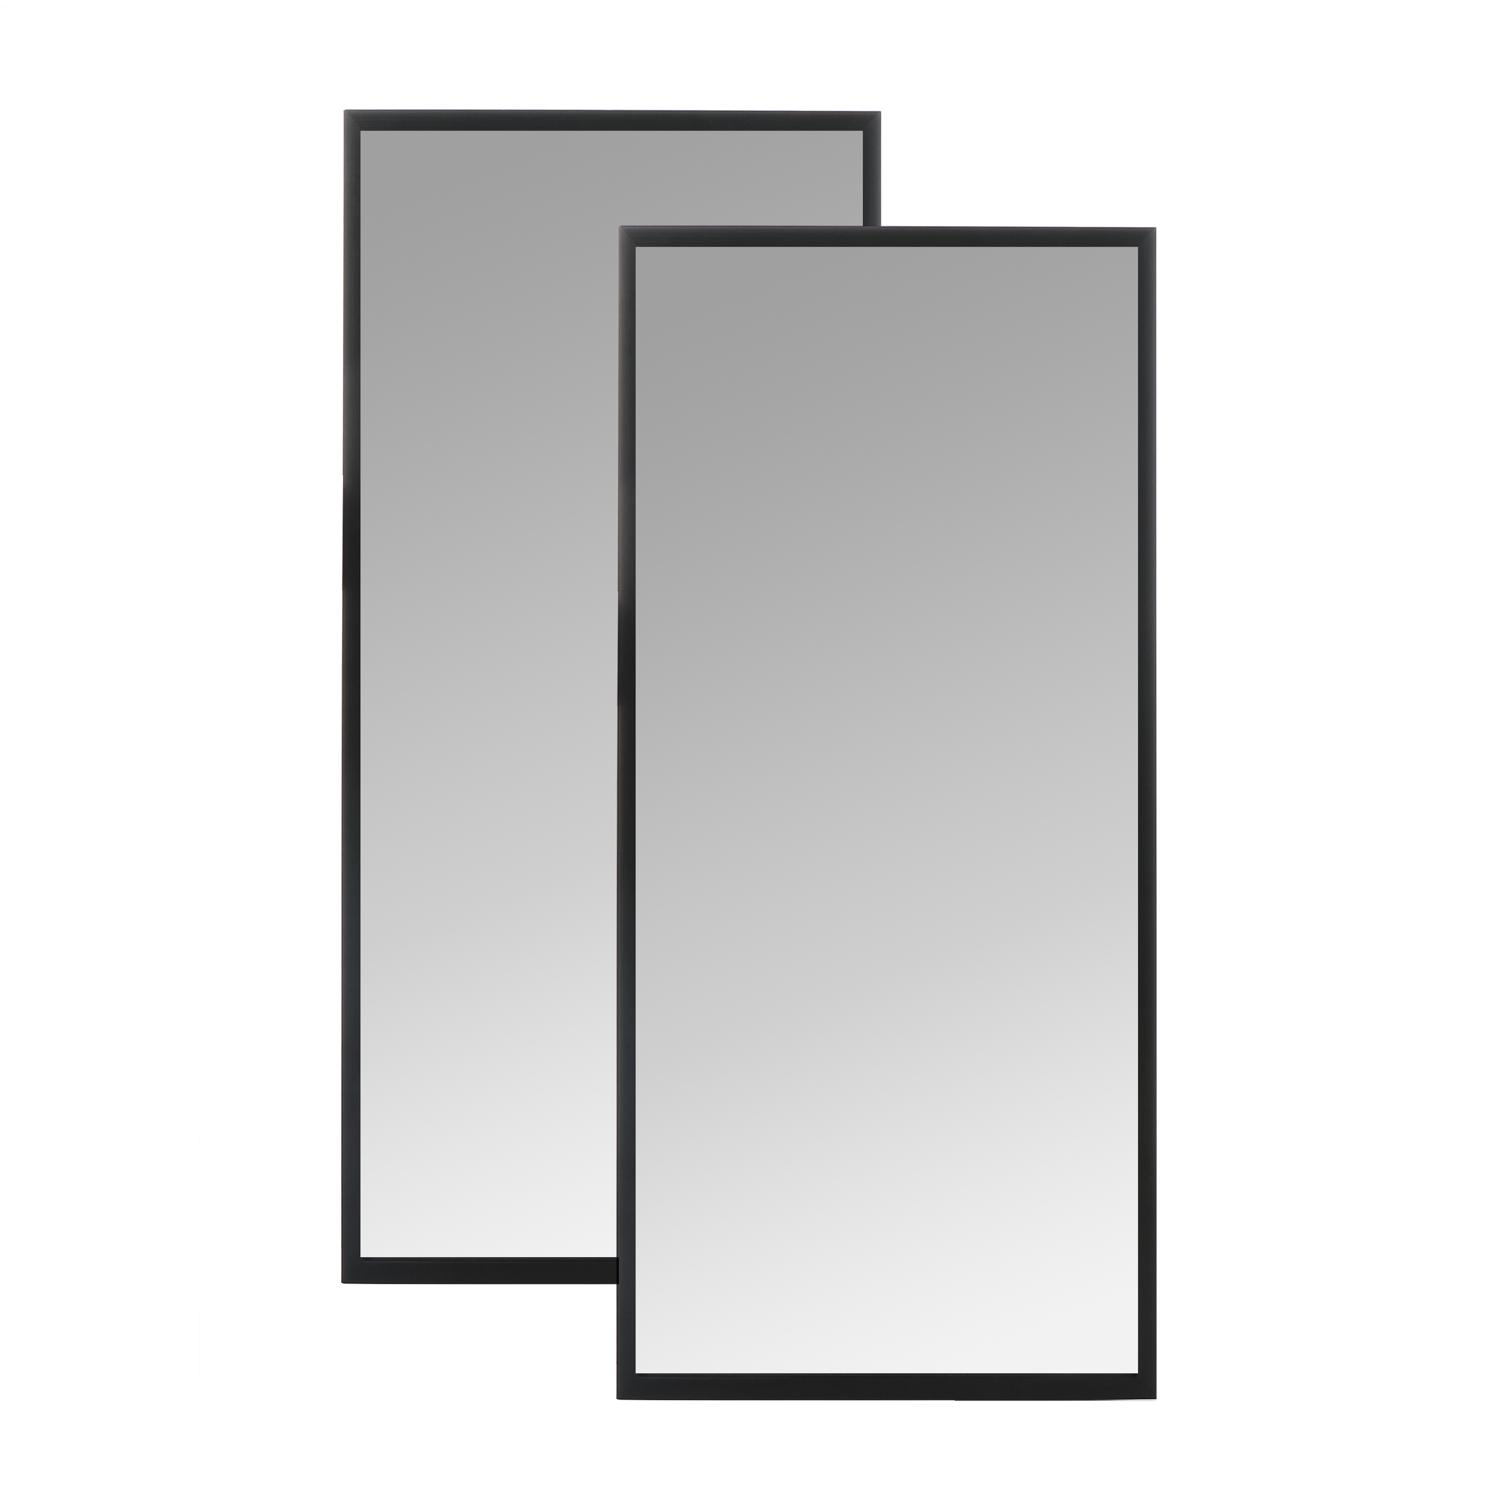 Mirrors For Sale Home Mirrors Prices Brands Review In - Unique-wall-mirrors-from-opulent-items